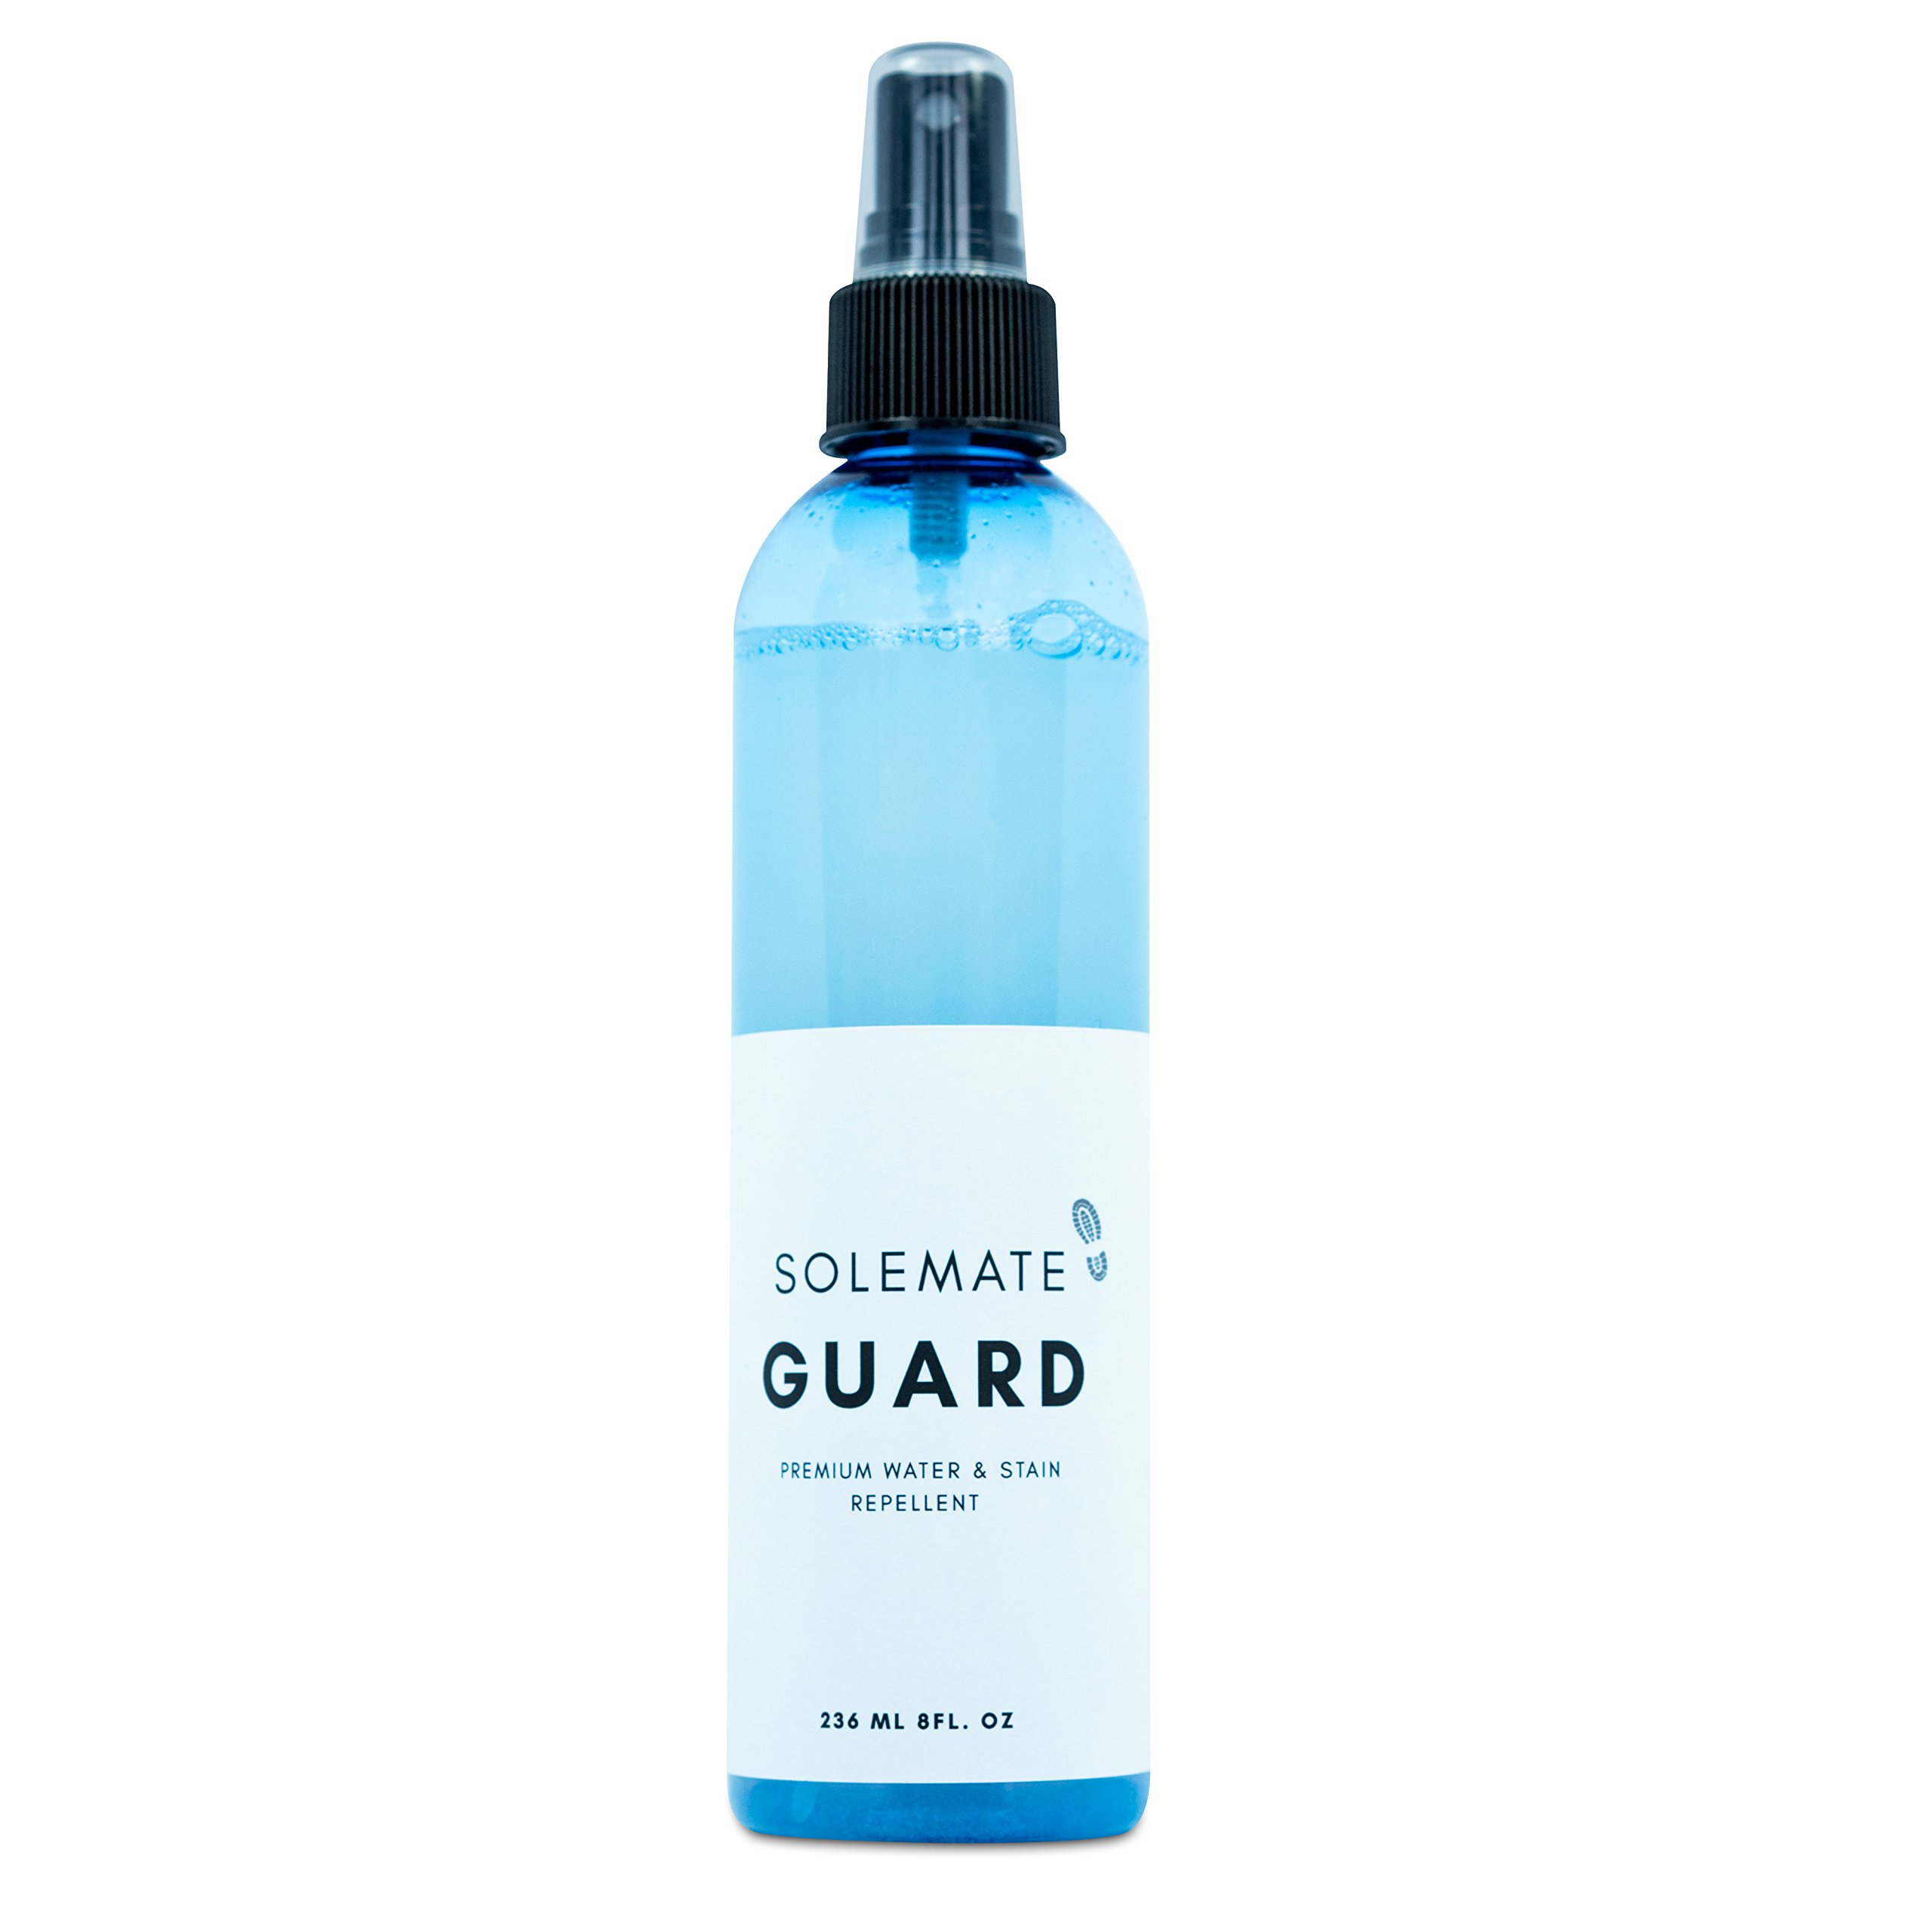 Solemate Guard - Premium Water & Stain Repellent - Waterproof and Protect Suede, Leather, Nubuck, Fabric, Nylon, Polyester & More - Sneakerhead Protector for All Sneakers, Shoes, Boots, Accessories